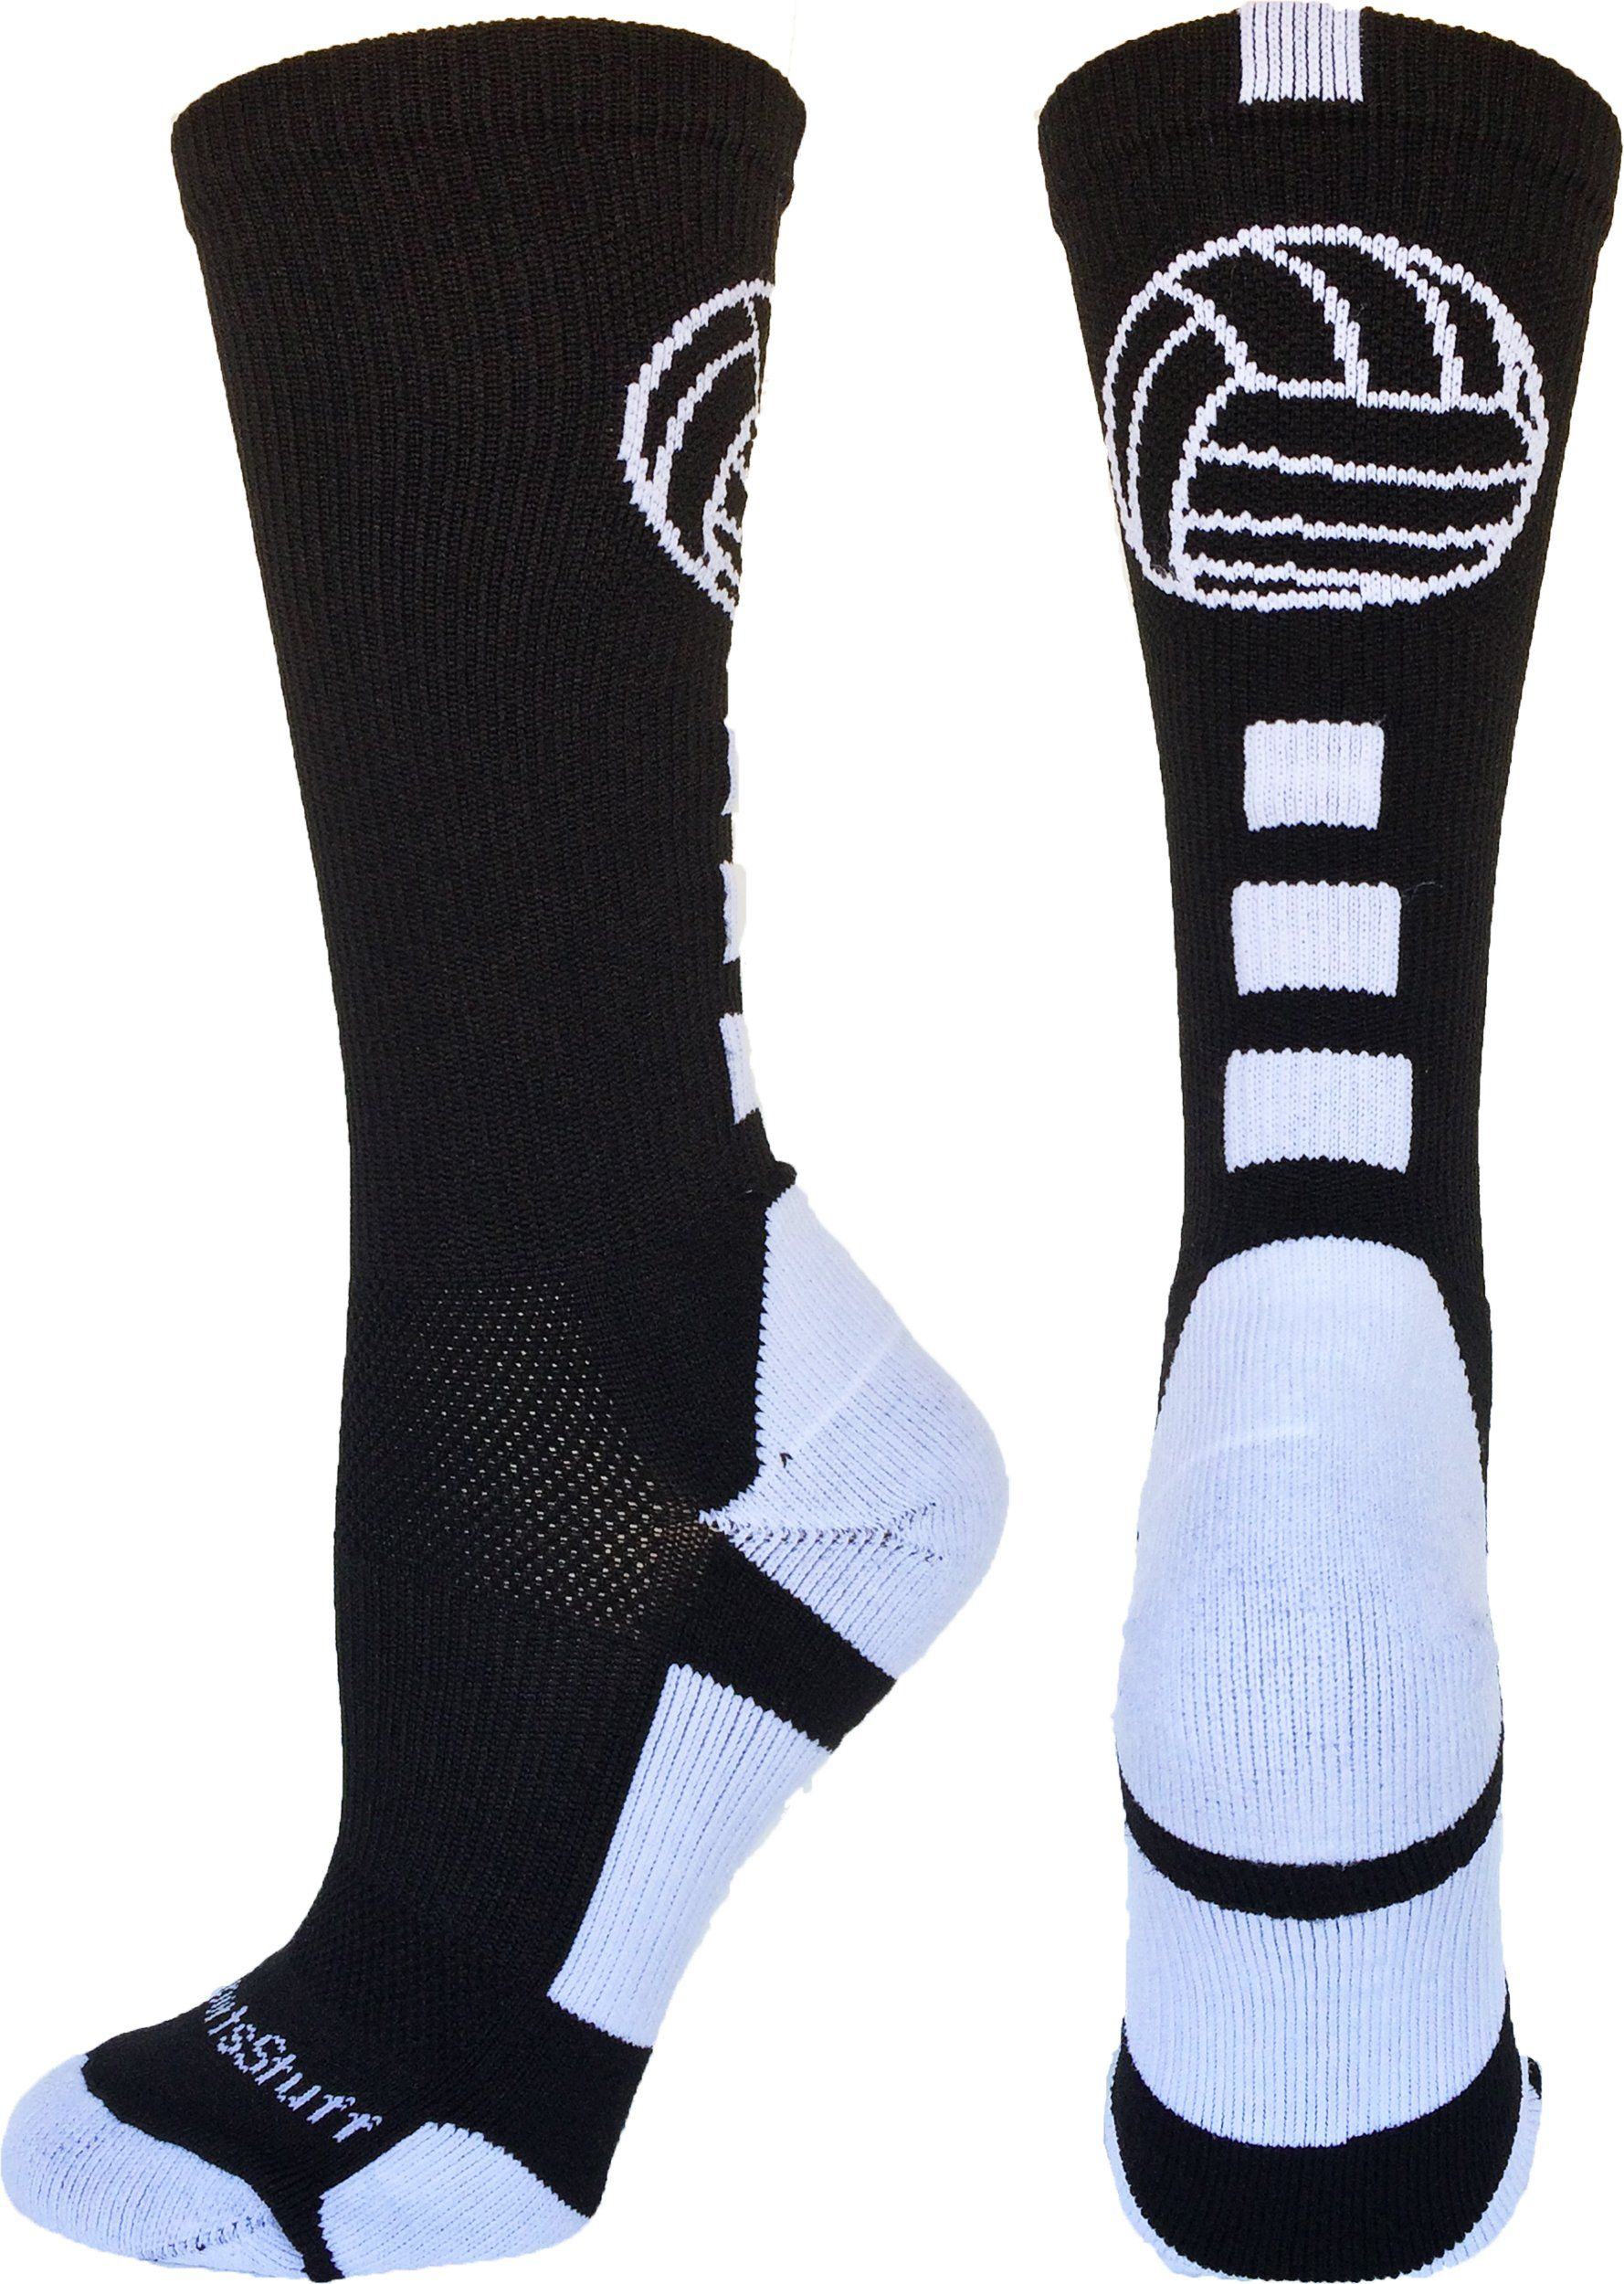 Volleyball Logo Crew Socks Black White Small Volleyball Socks Volleyball Outfits Sport Socks